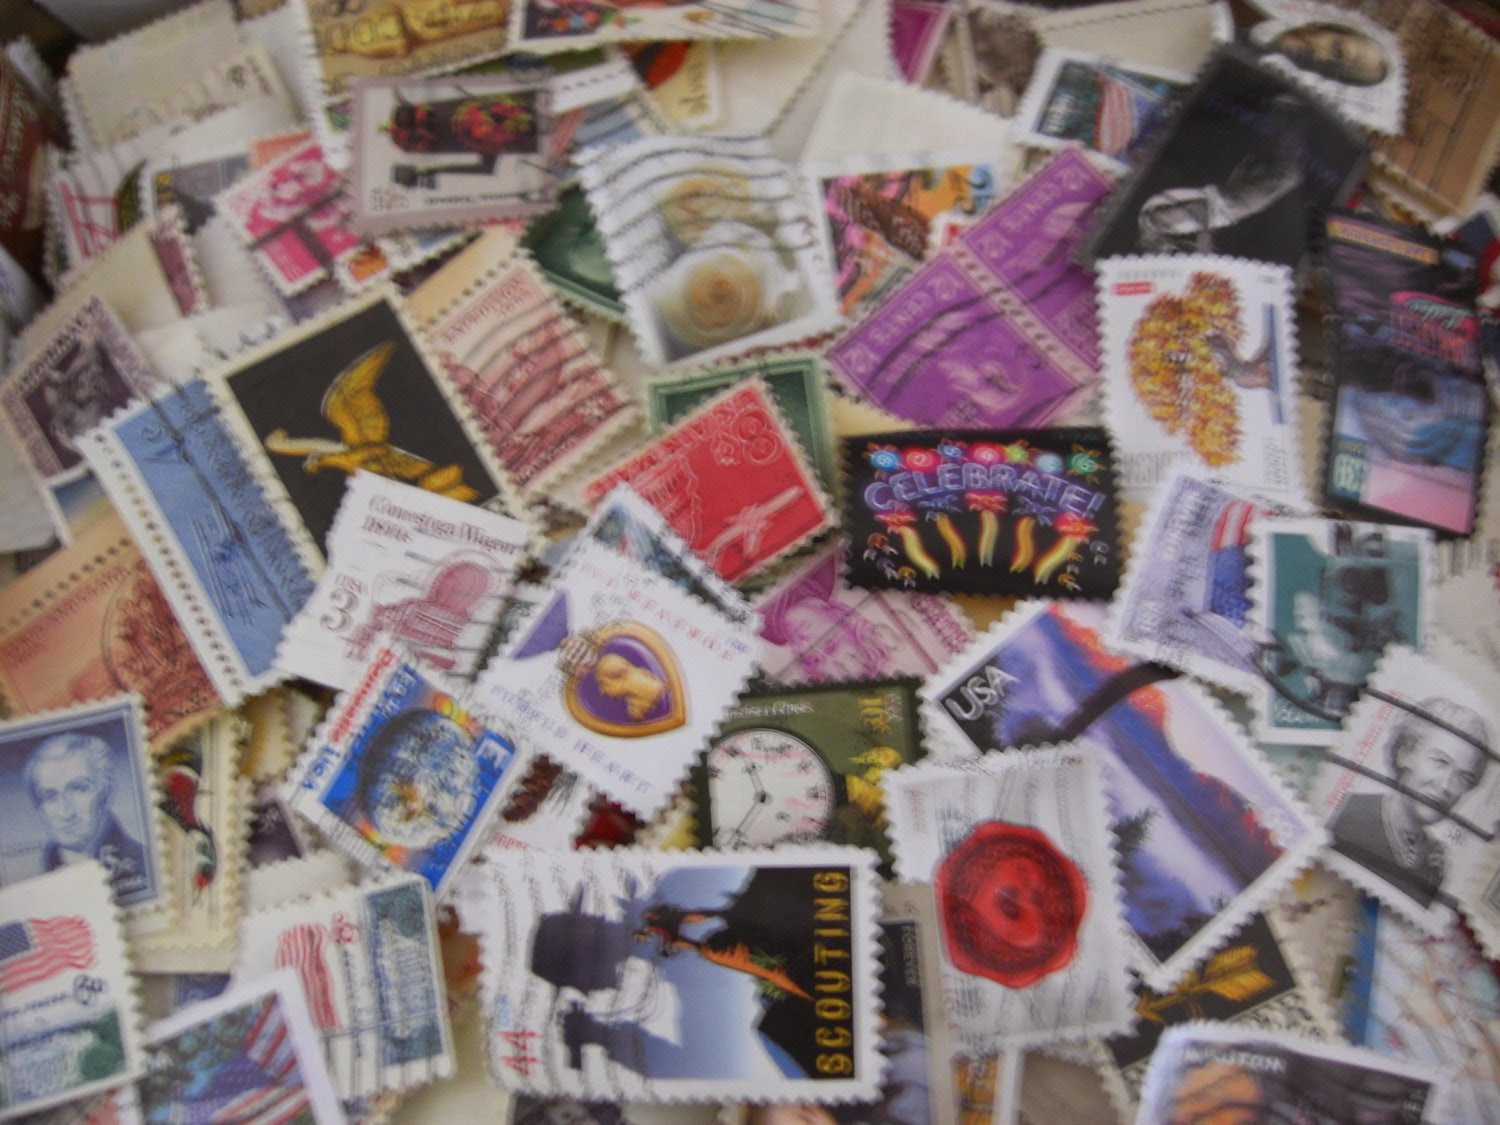 http://bargaincart.ecrater.com/p/19487083/us-postage-stamps-lot-of-200-early